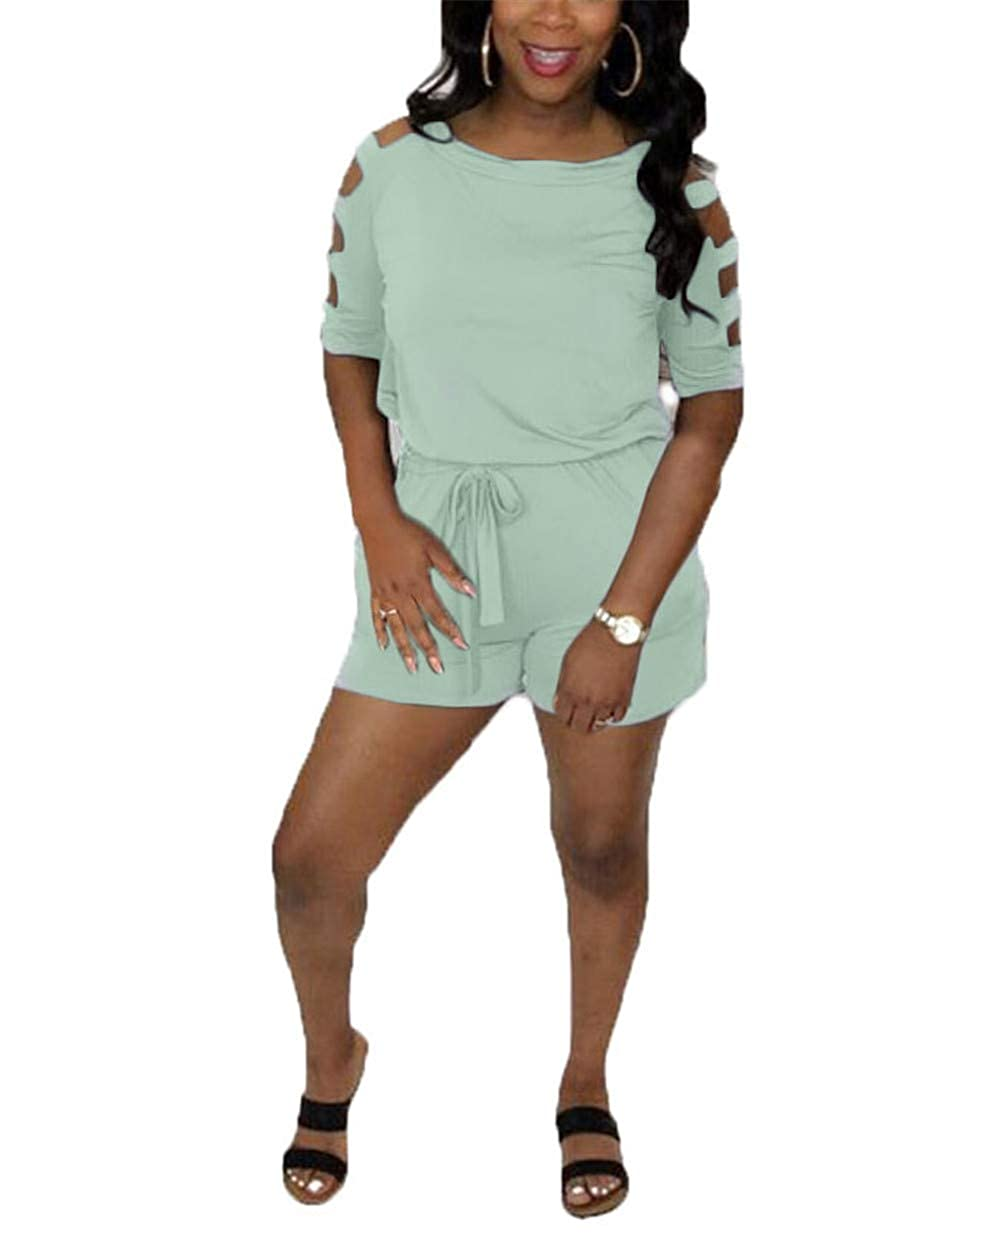 cnFaClu Womens Casual Strapless Short Sleeve Solid Color Romper Jumpsuit Shorts